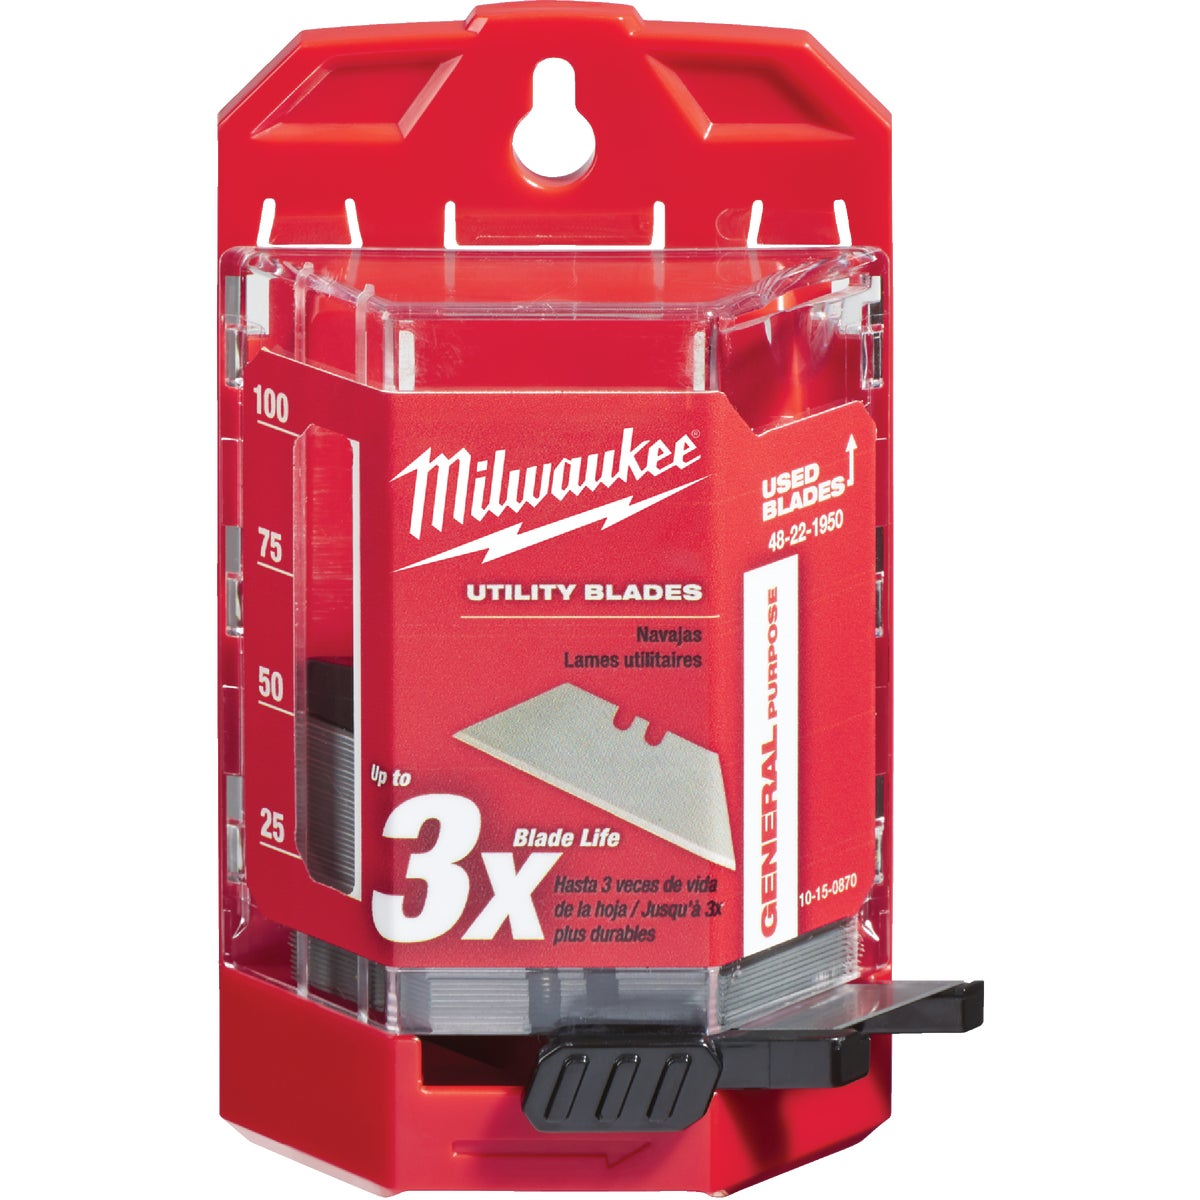 50PC GEN UTILITY BLADE - 48-22-1950 by Milwaukee Elec Tool